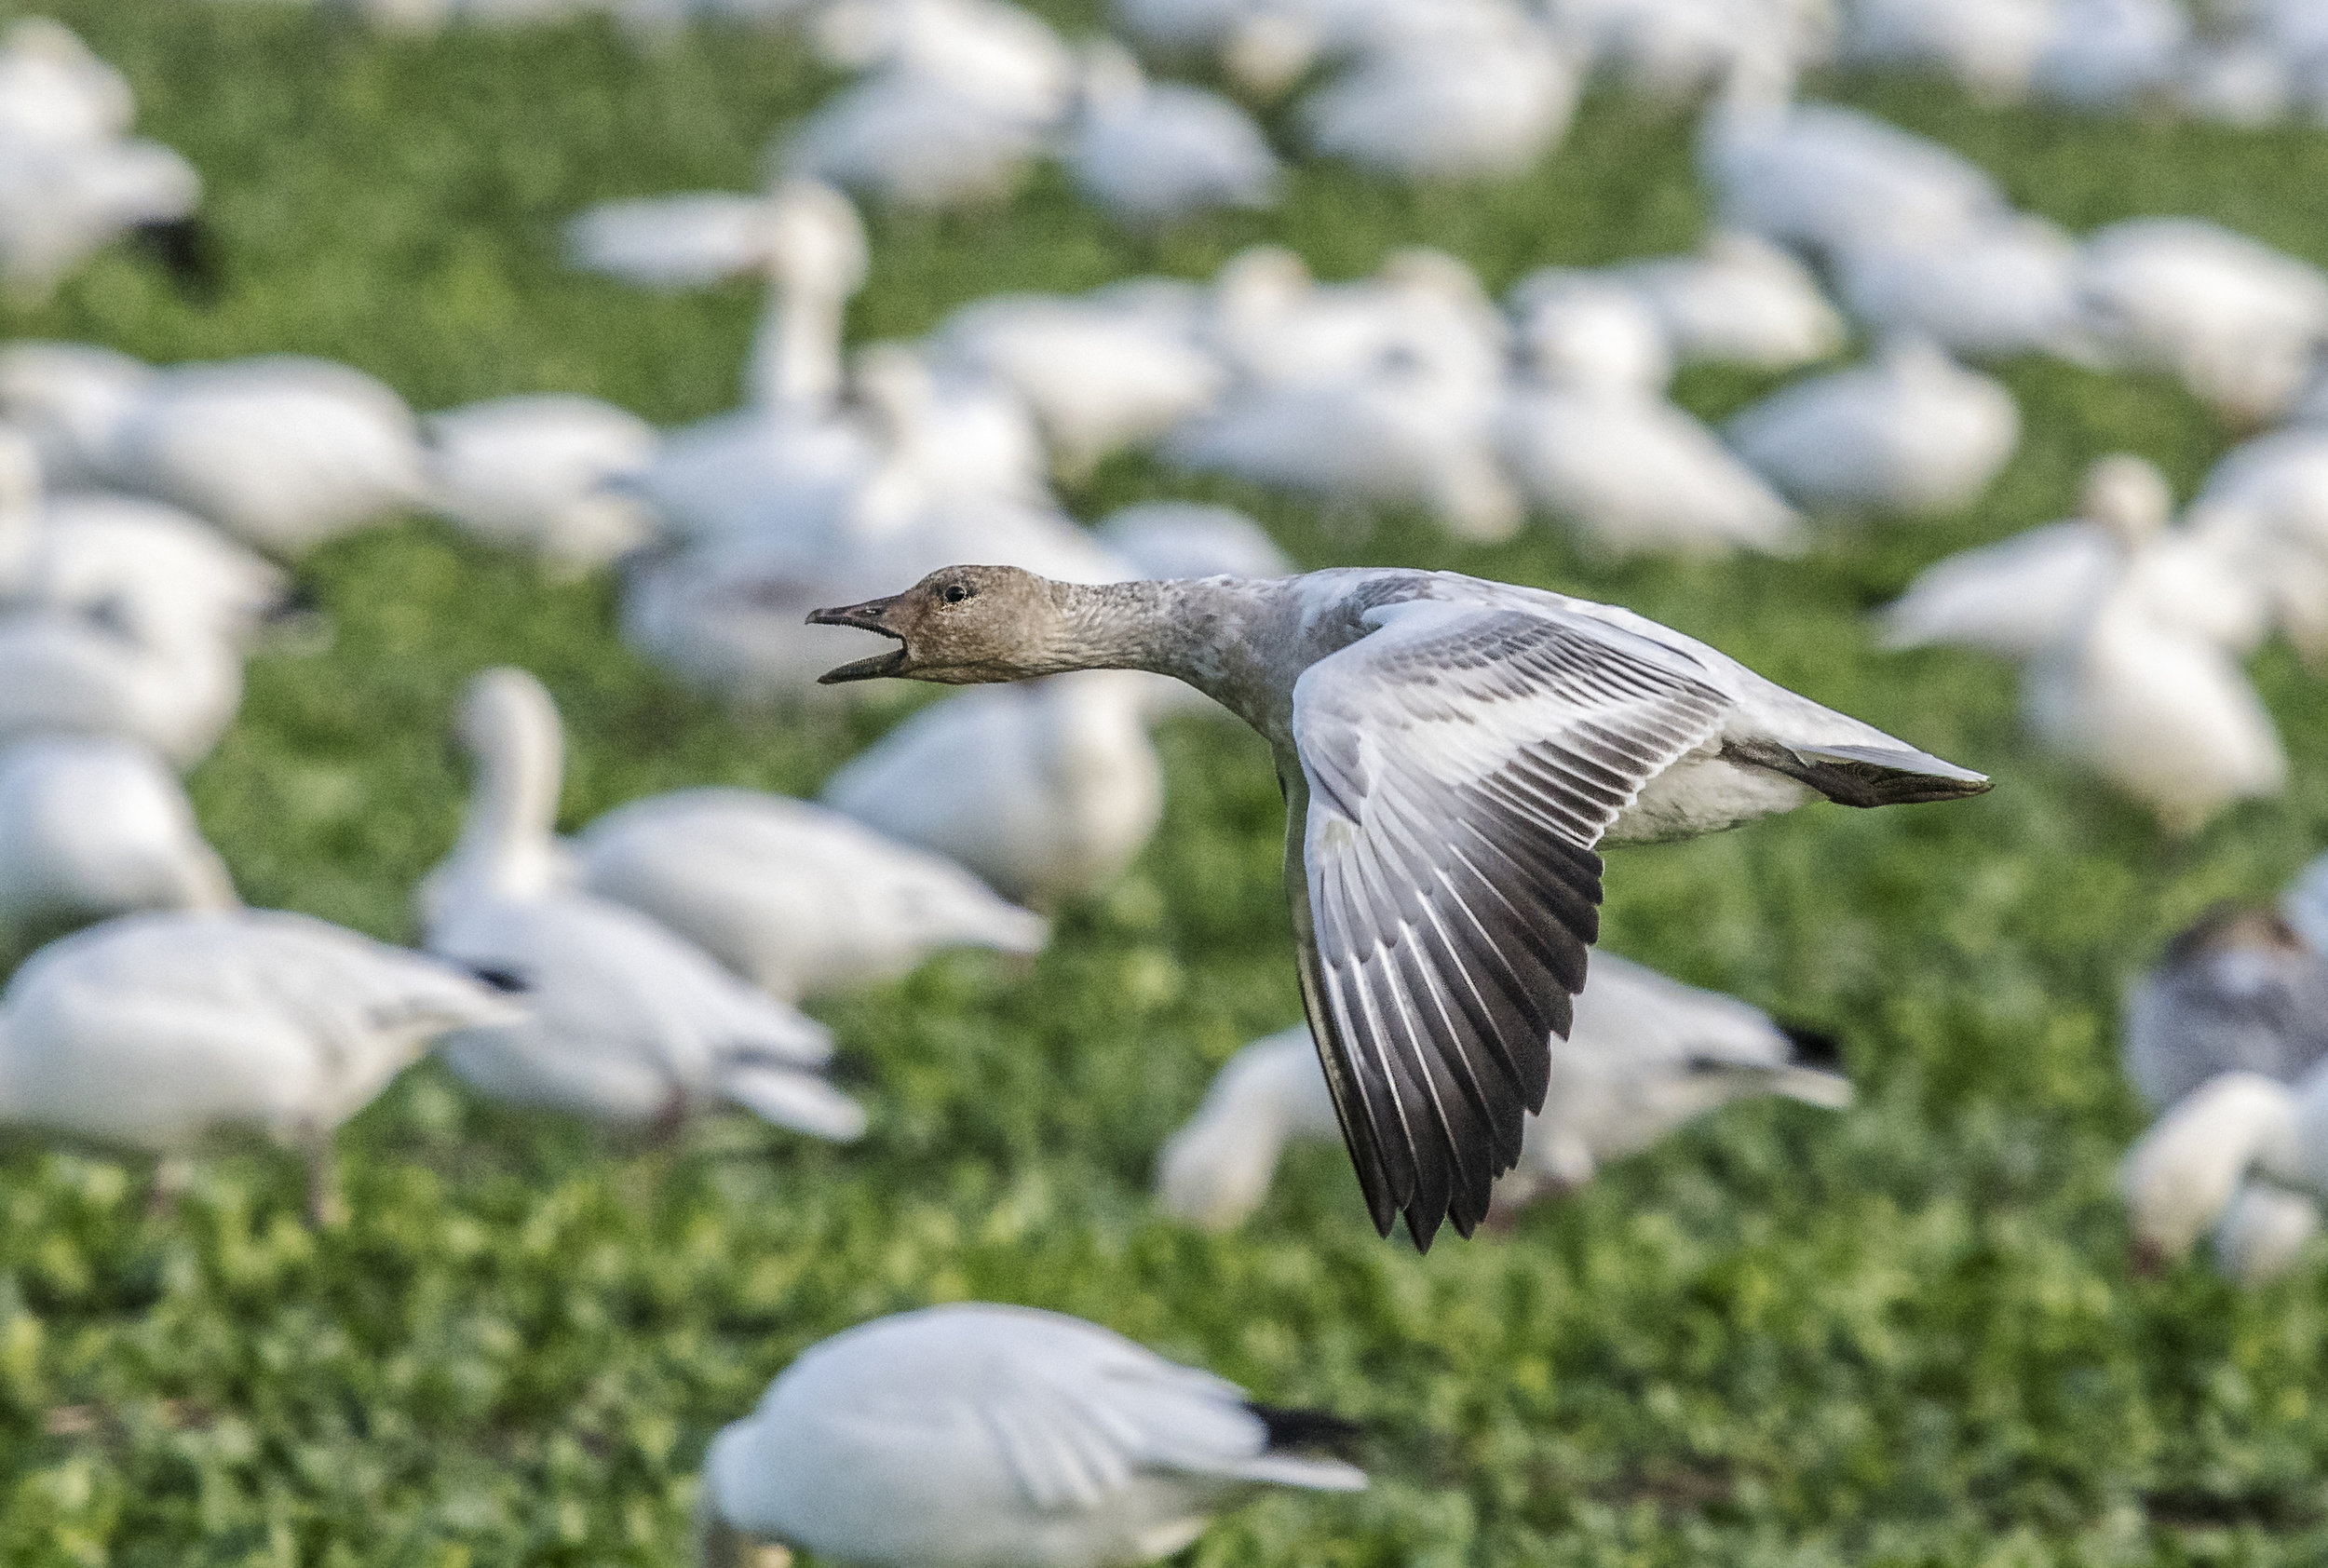 Only found in Washington during winter: Snow Goose (juvenile).  Photo by Ken Salzman